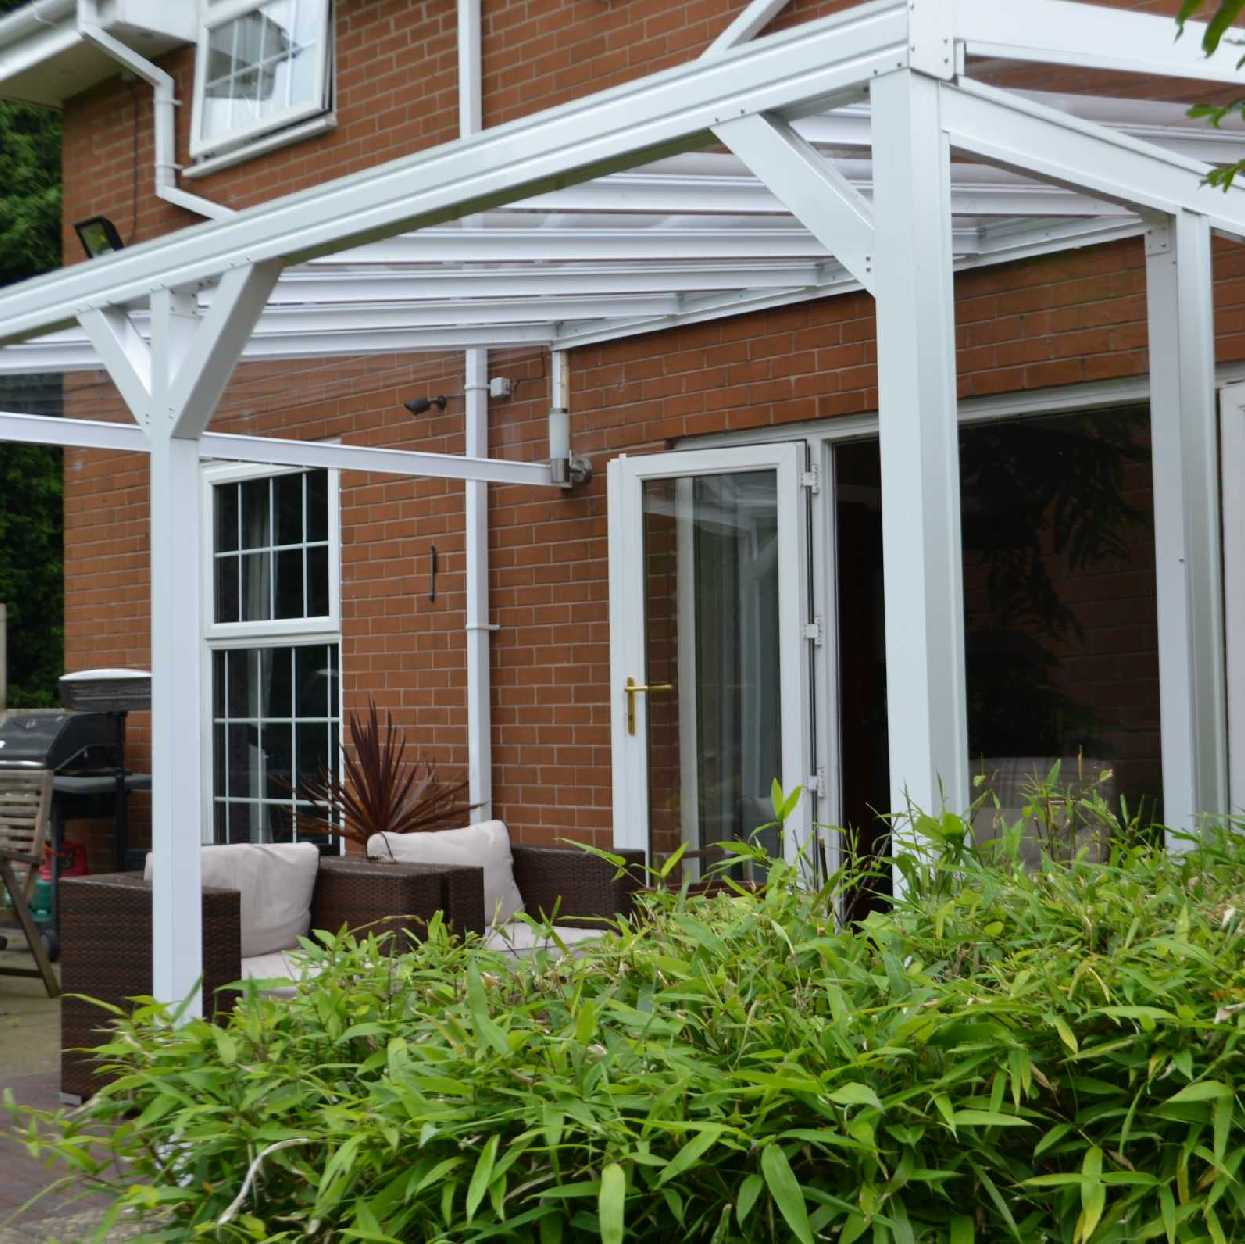 Omega Smart White Lean-To Canopy UNGLAZED for 6mm Glazing - 9.8m (W) x 2.5m (P), (5) Supporting Posts from Omega Build